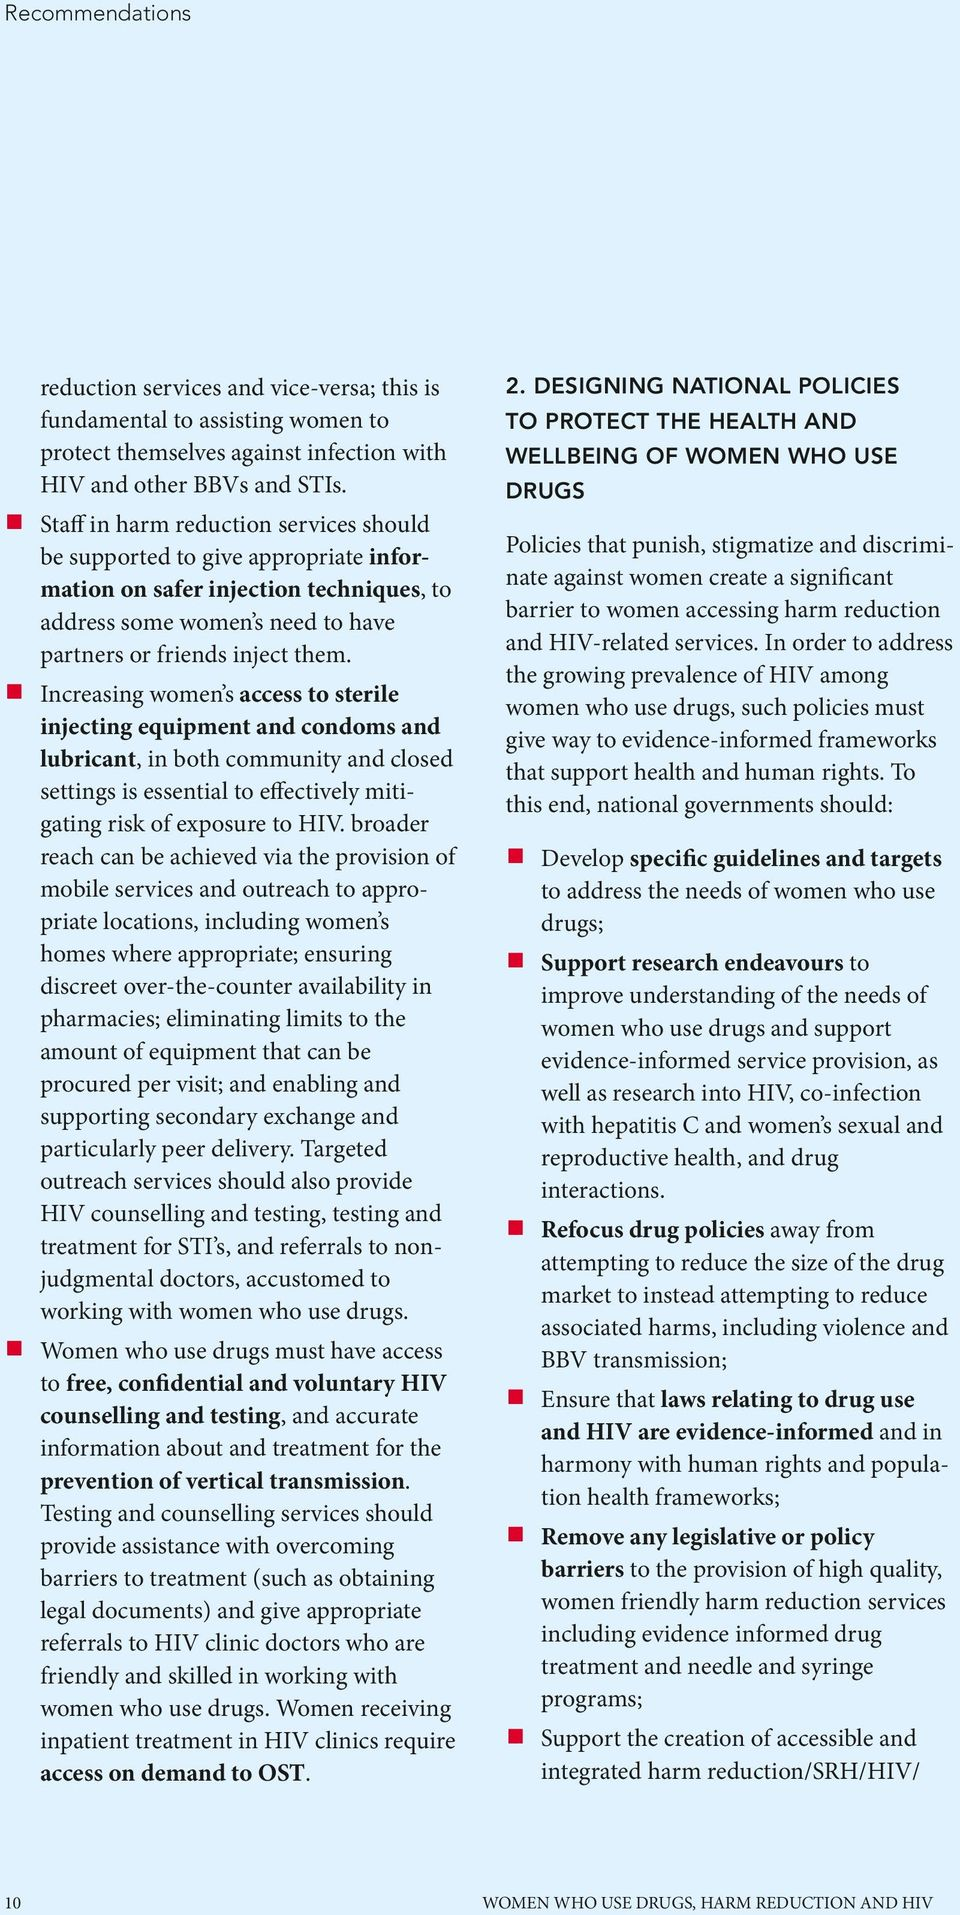 Increasing women s access to sterile injecting equipment and condoms and lubricant, in both community and closed settings is essential to effectively mitigating risk of exposure to HIV.